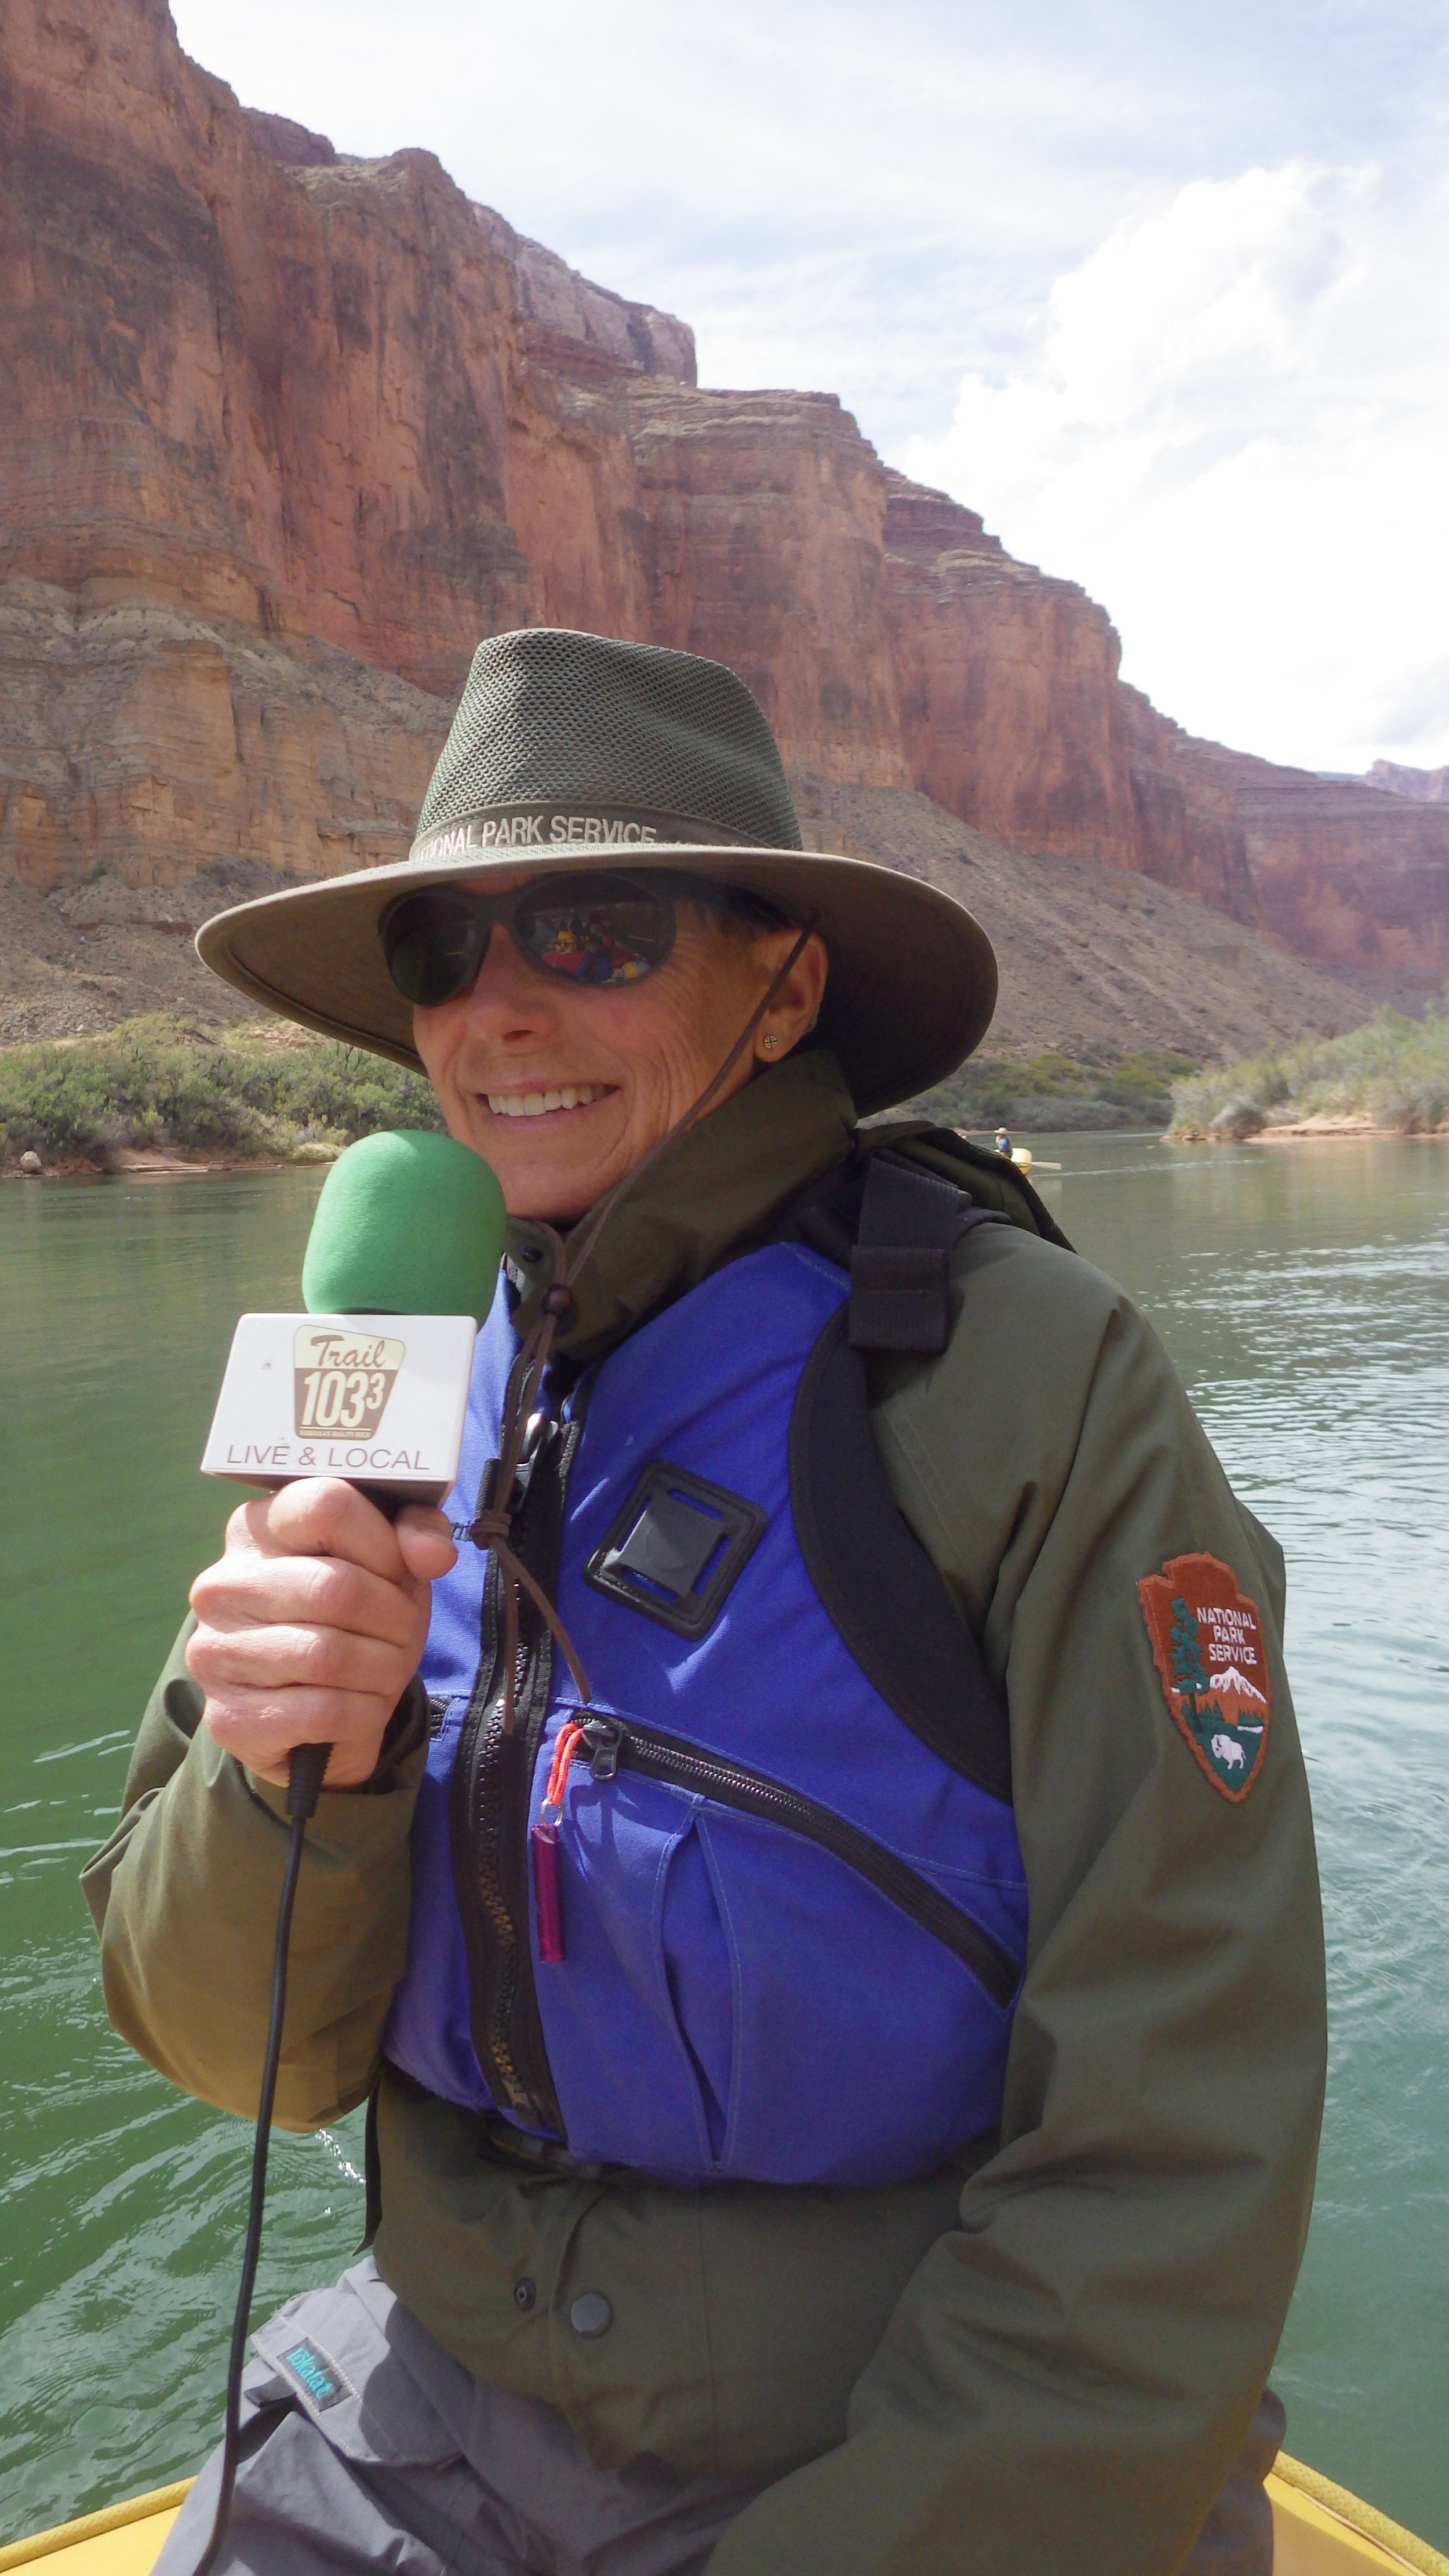 Interviewing Martha Hahn, Chief of Science & Resource Management for Grand Canyon National Park. Recorded during Grand Canyon River Guides Guide Training Seminar two week river expedition.